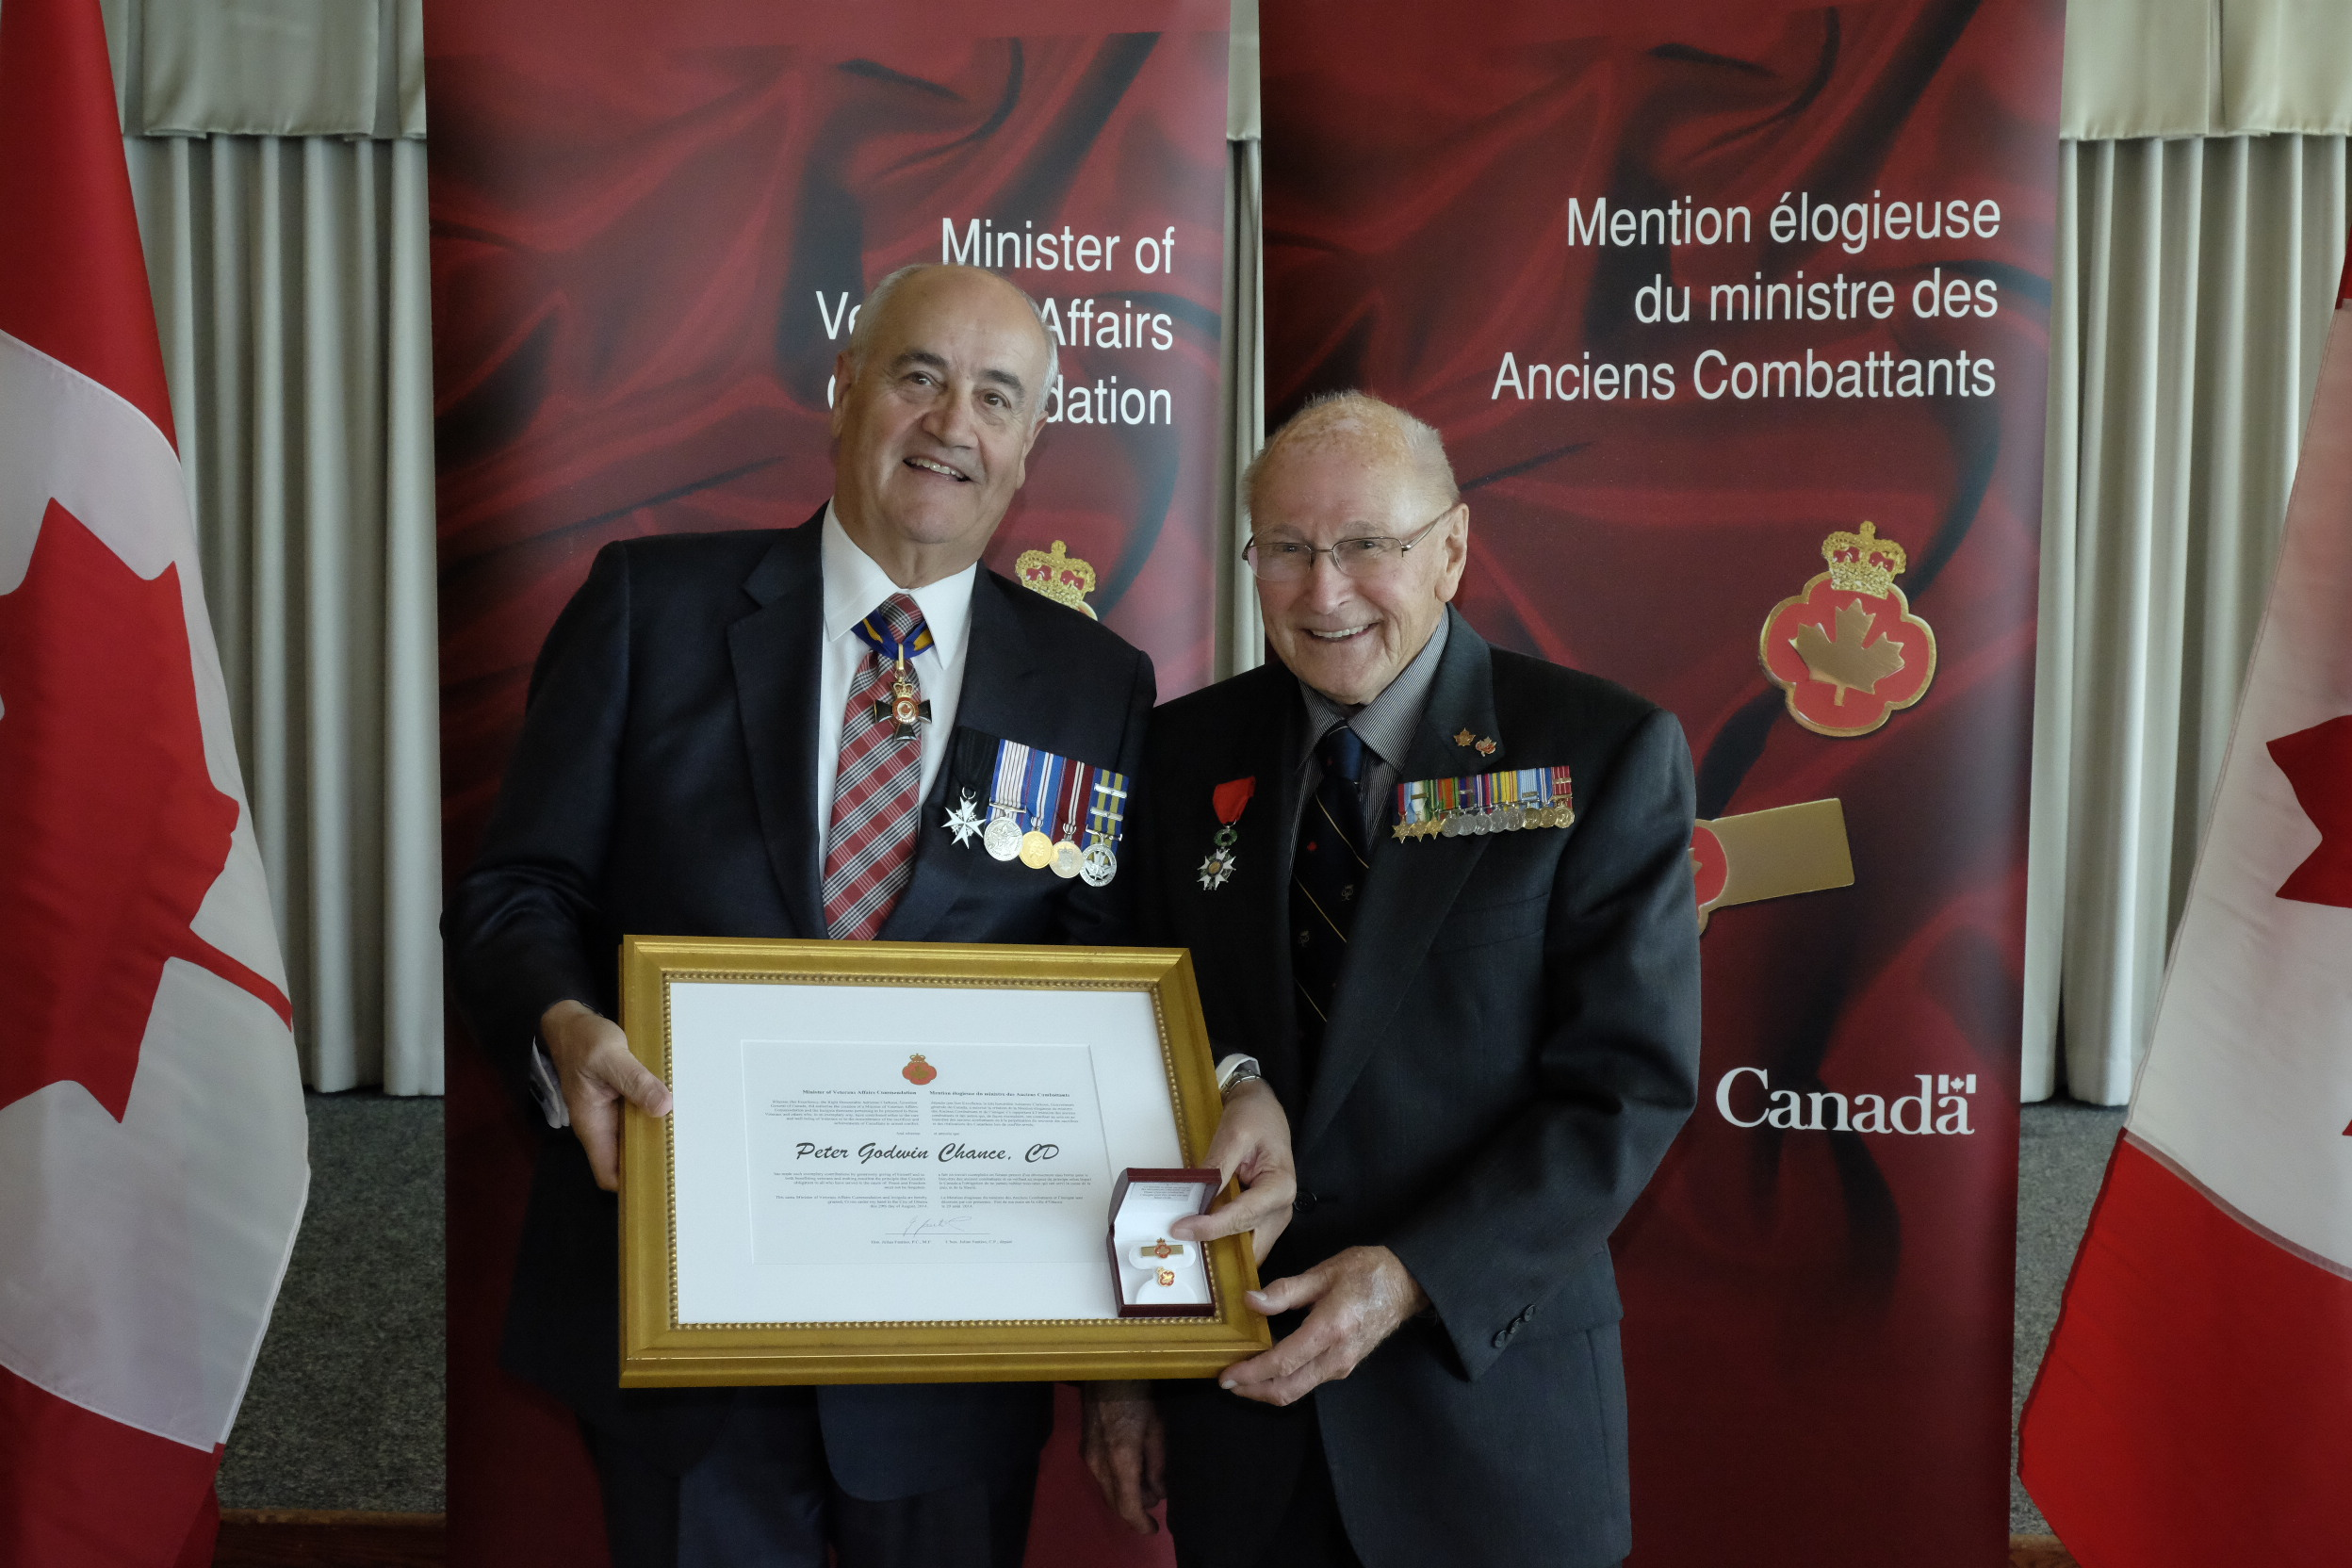 Second World War and Korean War veteran of the Canadian Armed Forces Peter Godwin Chance (right) receives the Minister of Veterans Affairs Commendation from Minister Julian Fantino on September 12, 2014. He recently received the French Legion of Honour Medal at the rank of Knight. He speaks in local schools at Remembrance Day ceremonies, and visits and takes books to geriatric patients in the local hospital, and working with other programs that help veterans. PHOTO: Courtesy of Veterans Affairs Canada